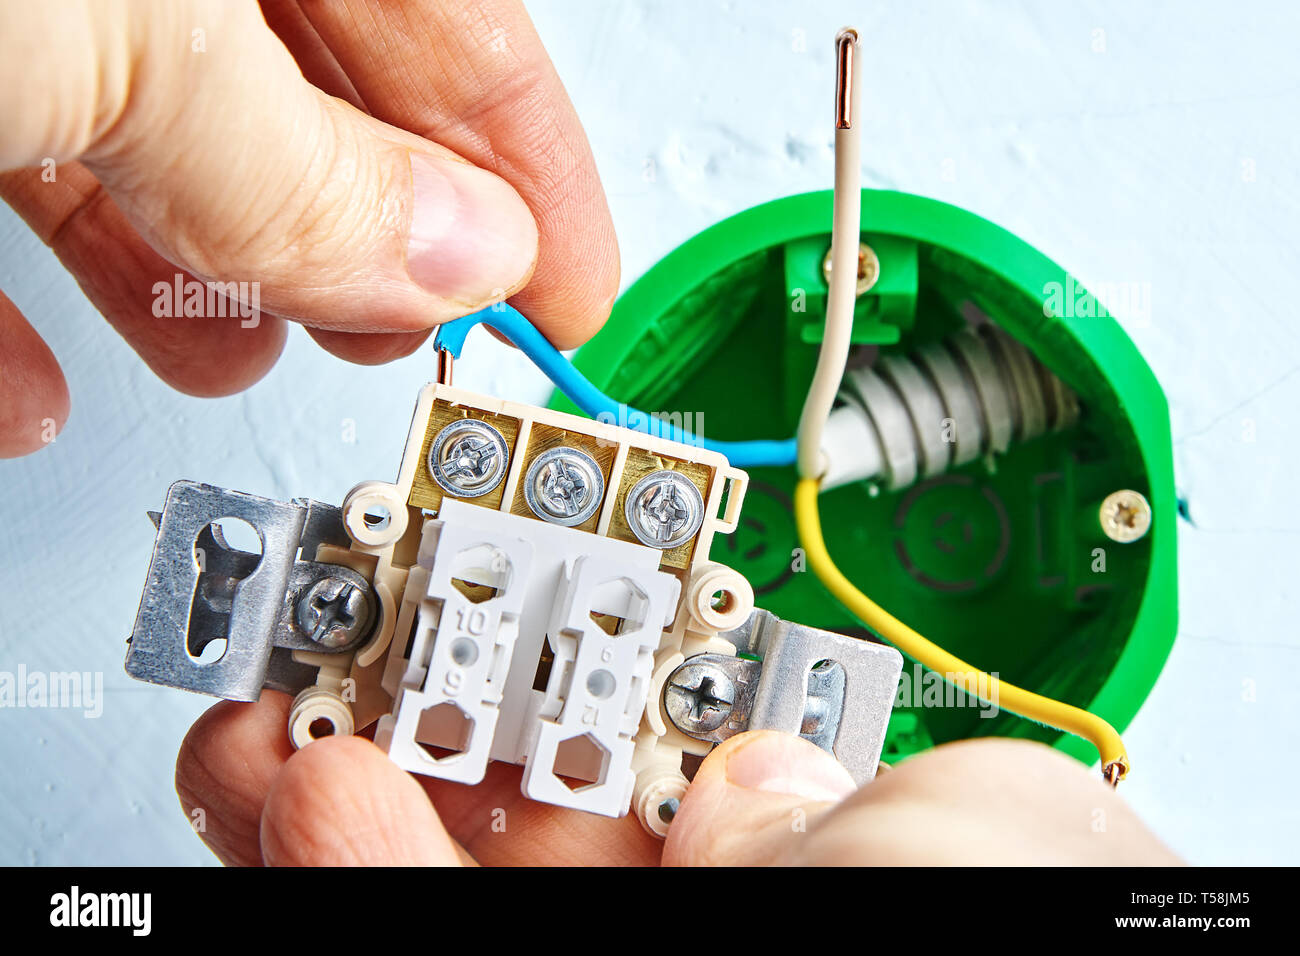 Wiring A Double Switch Light